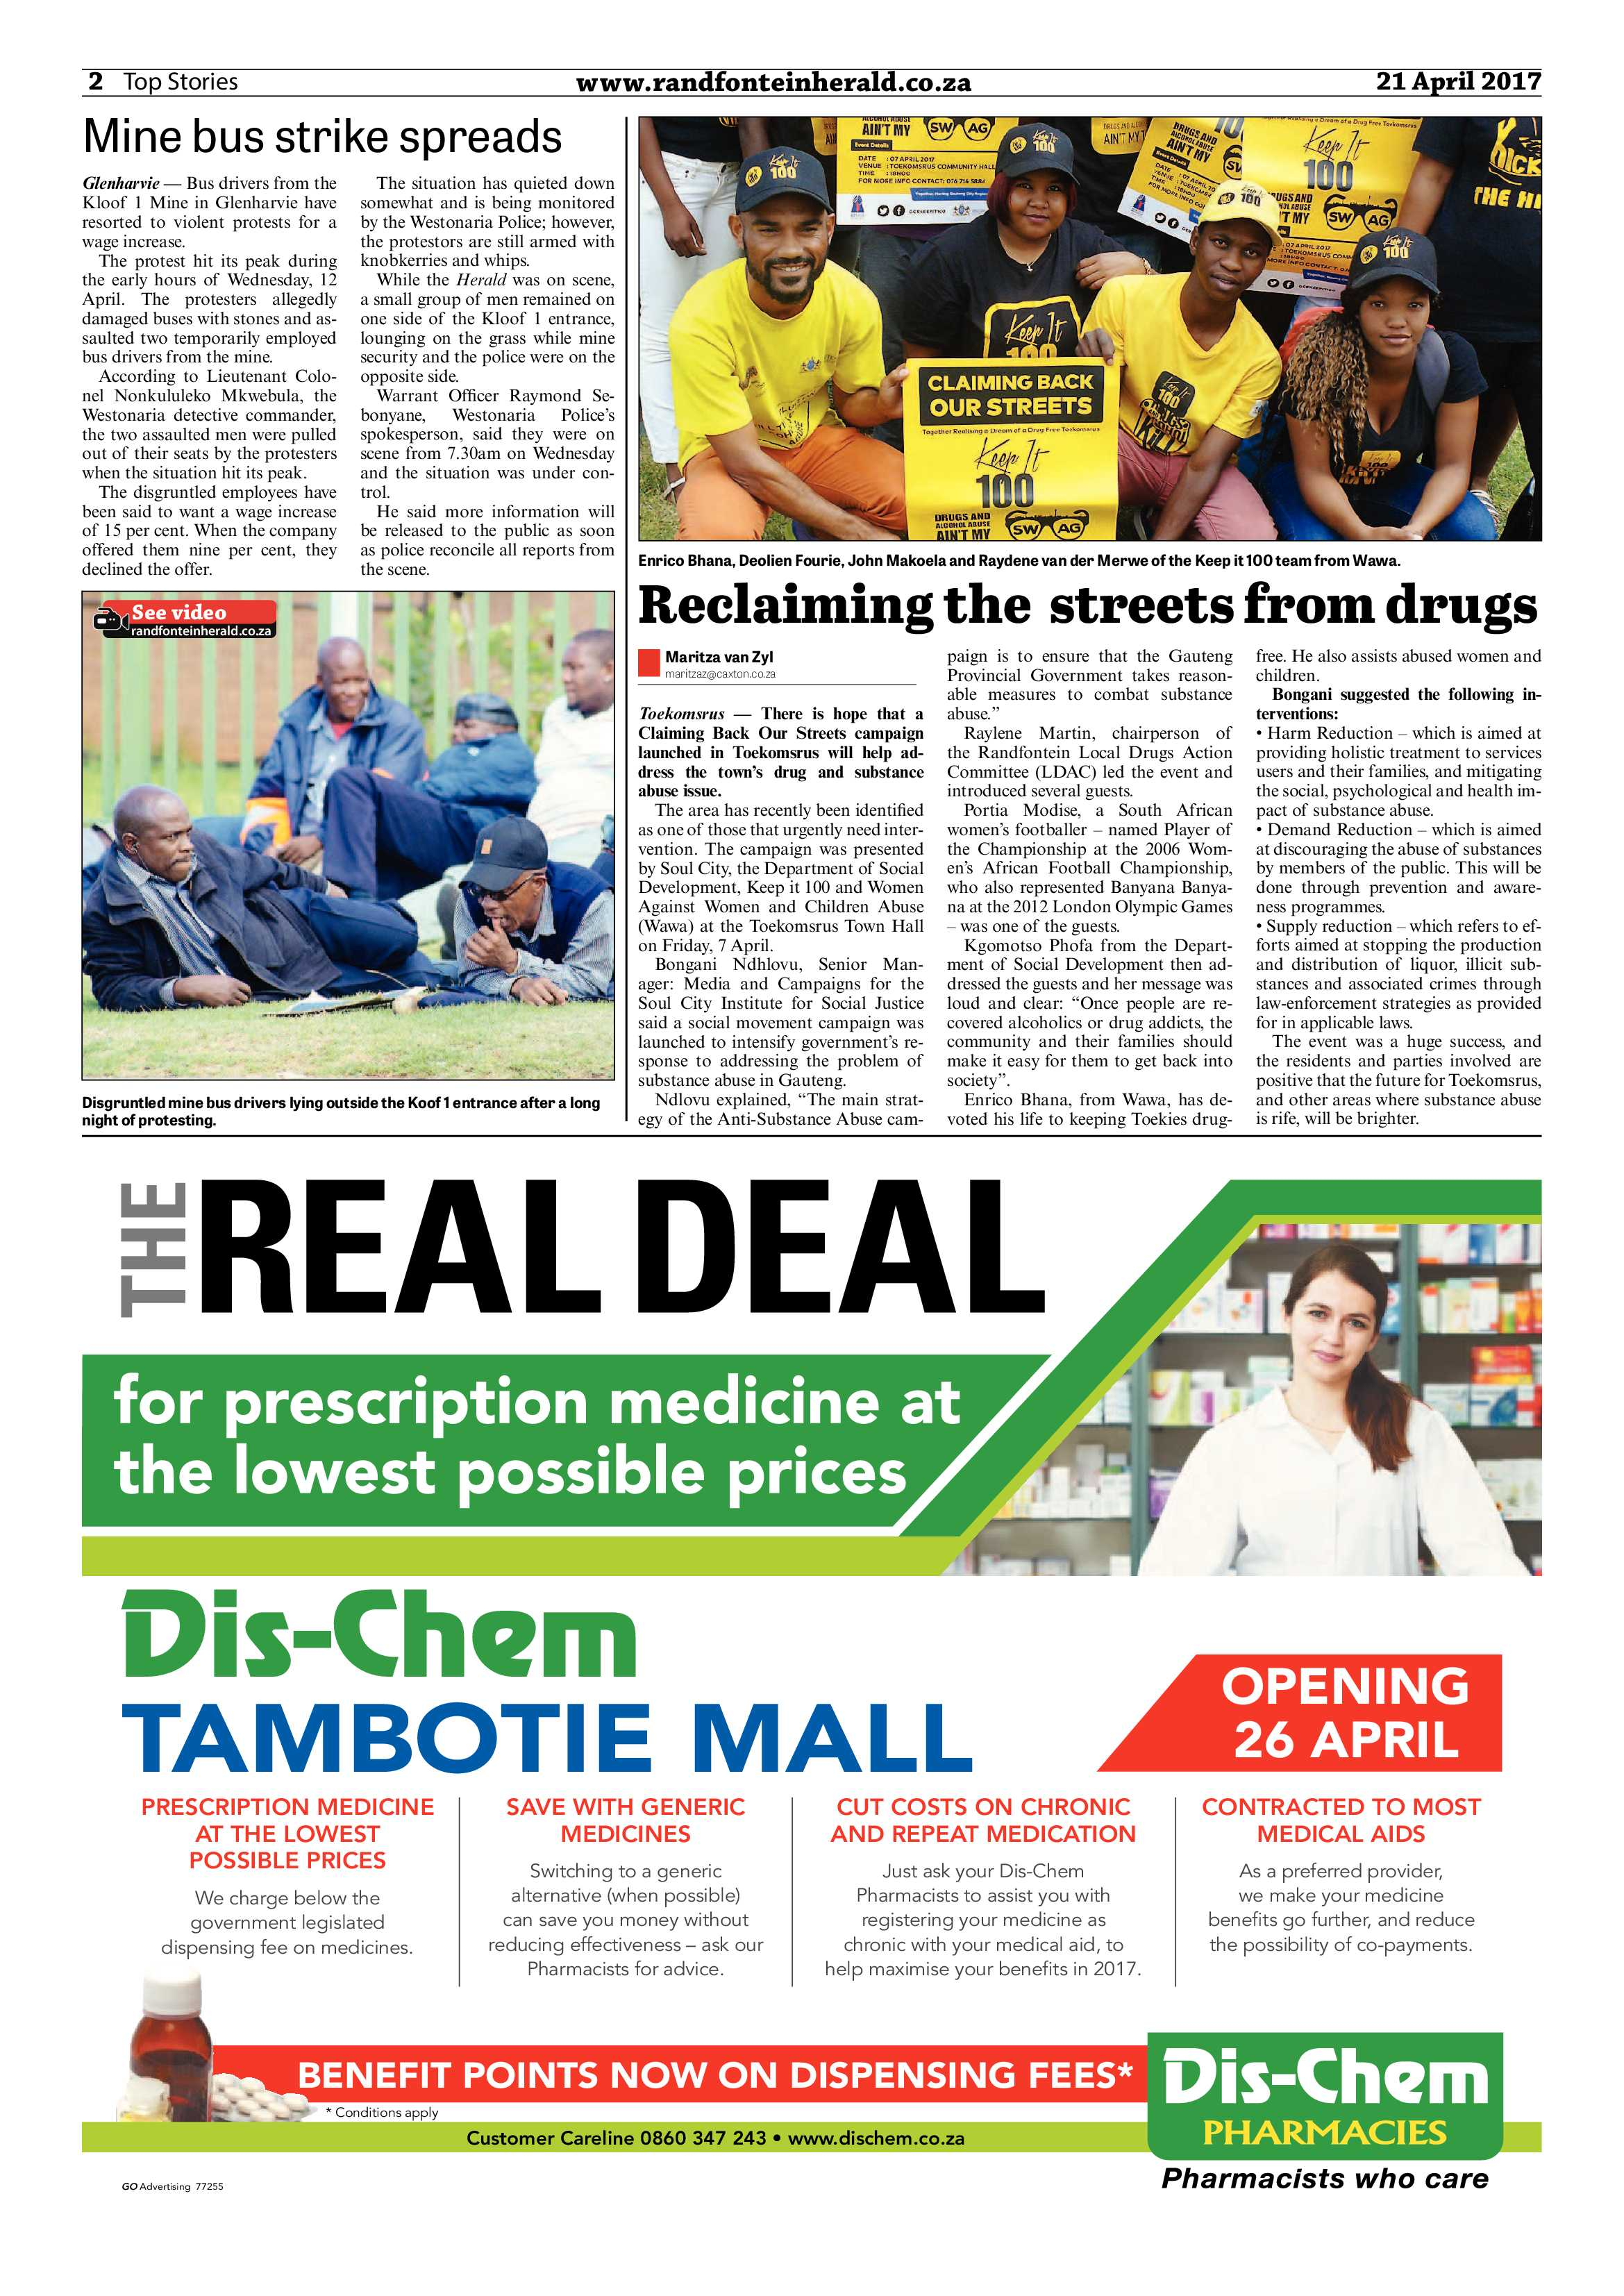 randfontein-herald-21-april-2017-epapers-page-2